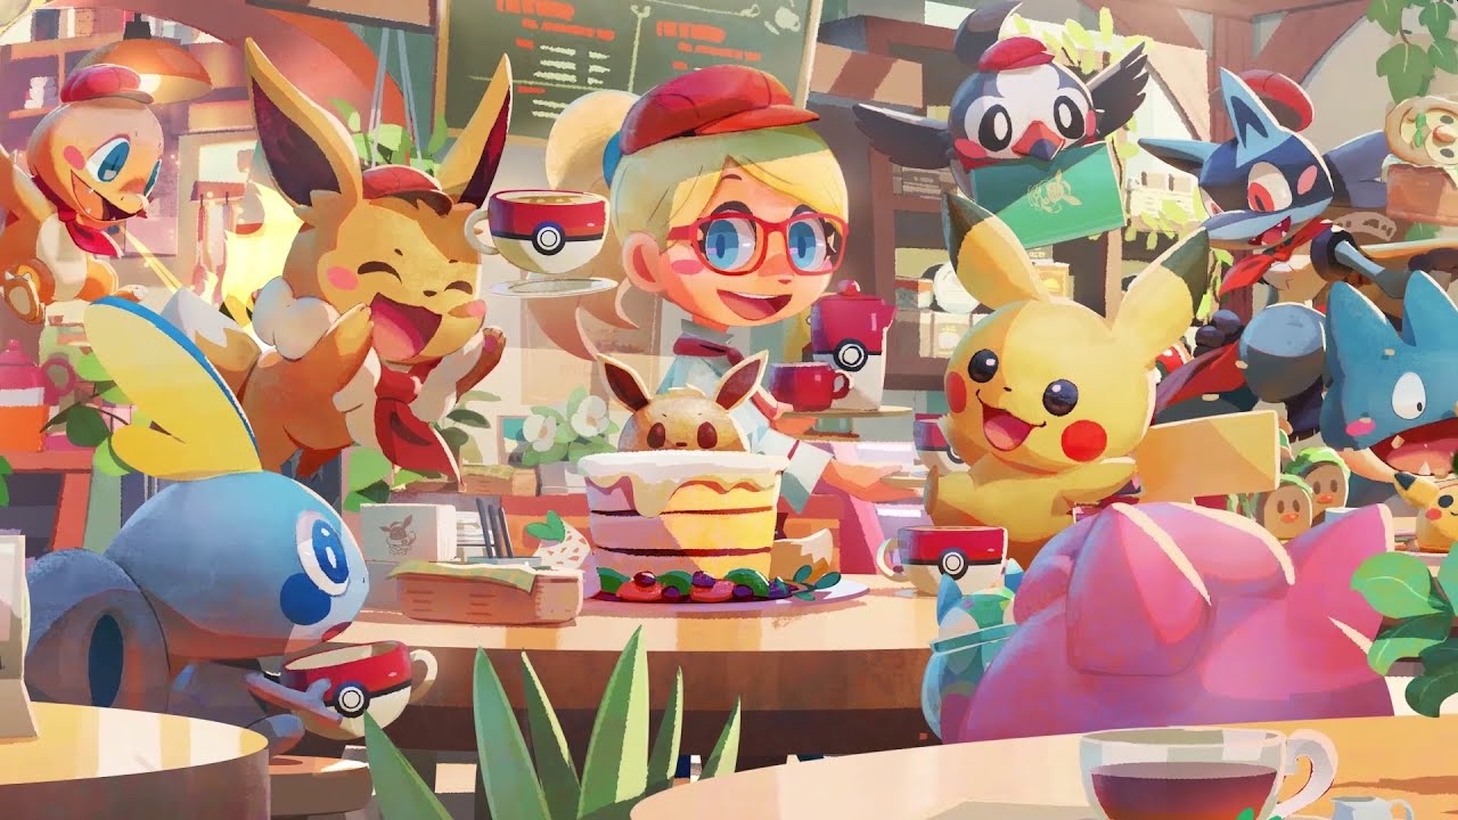 Pokémon Café Mix Exceeds Five Million Downloads Worldwide With Free Gifts For All Players